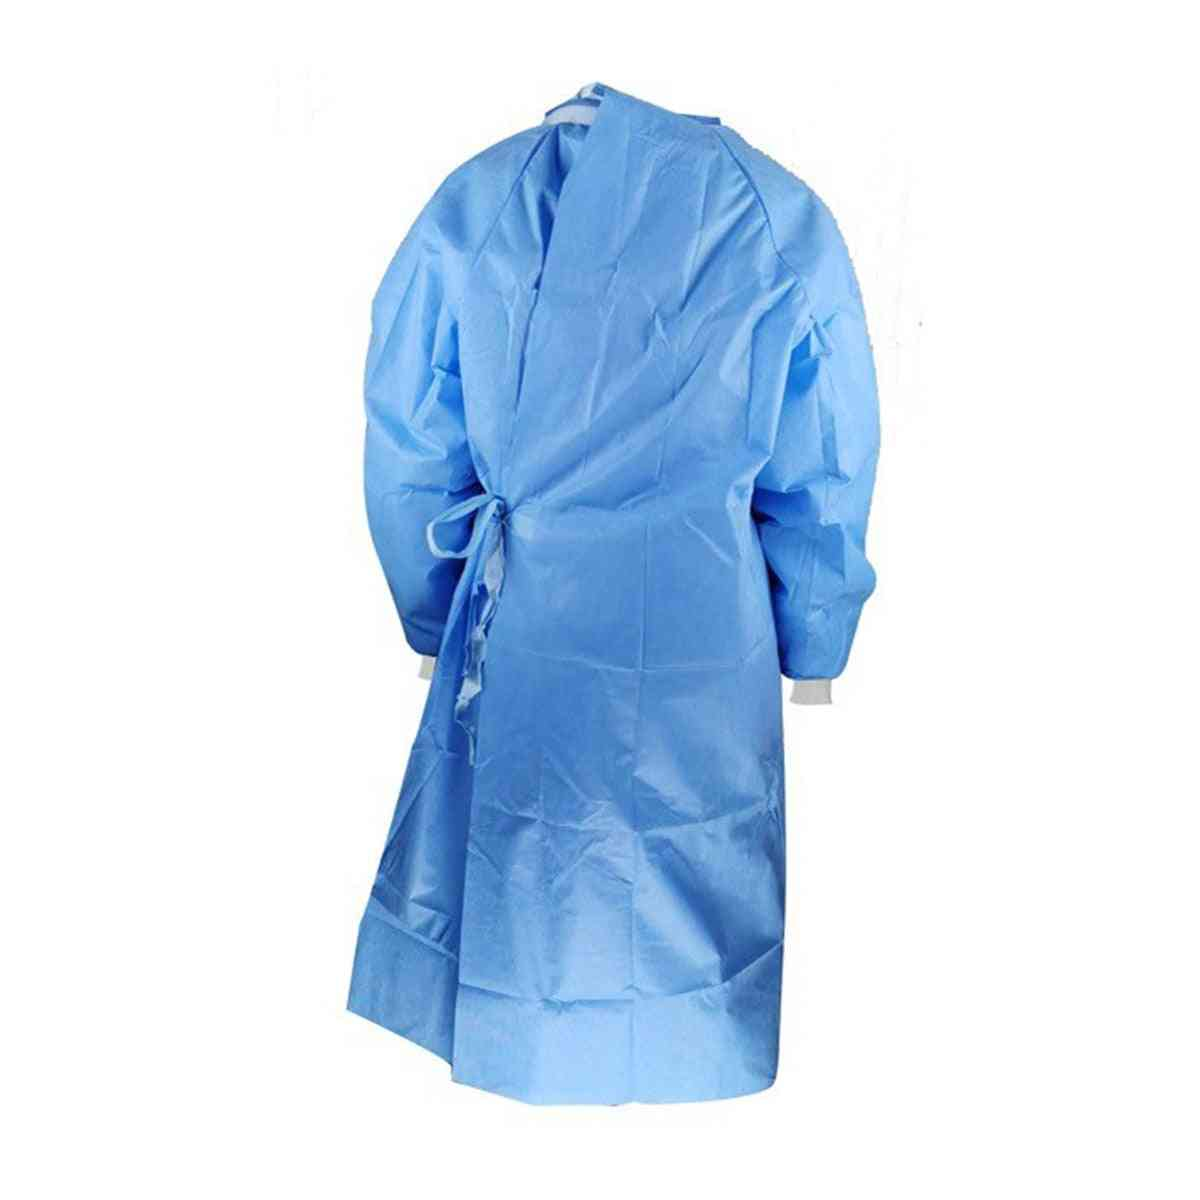 Disposable Protective, Dustproof & Waterproof, Isolation Gown Suit